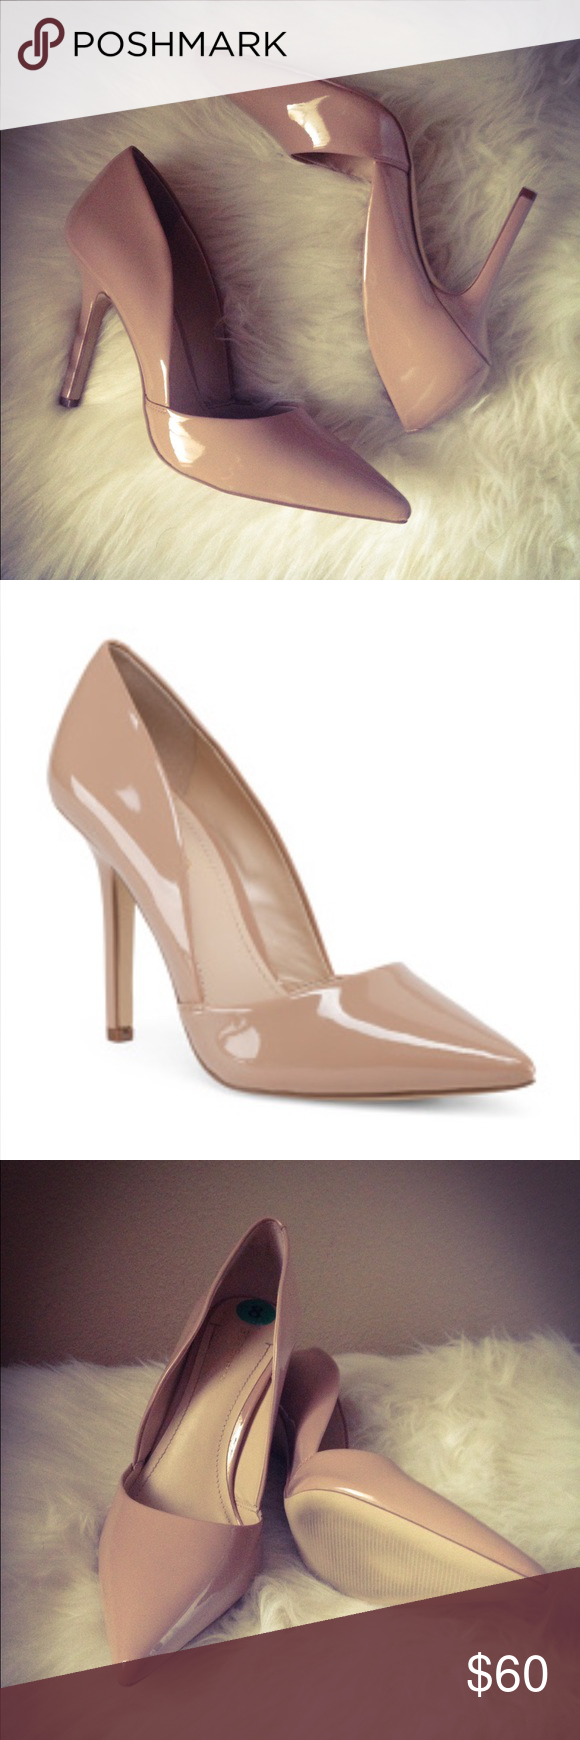 93be318e7eb •BCBG Damia Patent Heels• Beautiful Nude Patent Pumps by BCBGeneration!  Cushioned insole 4.25